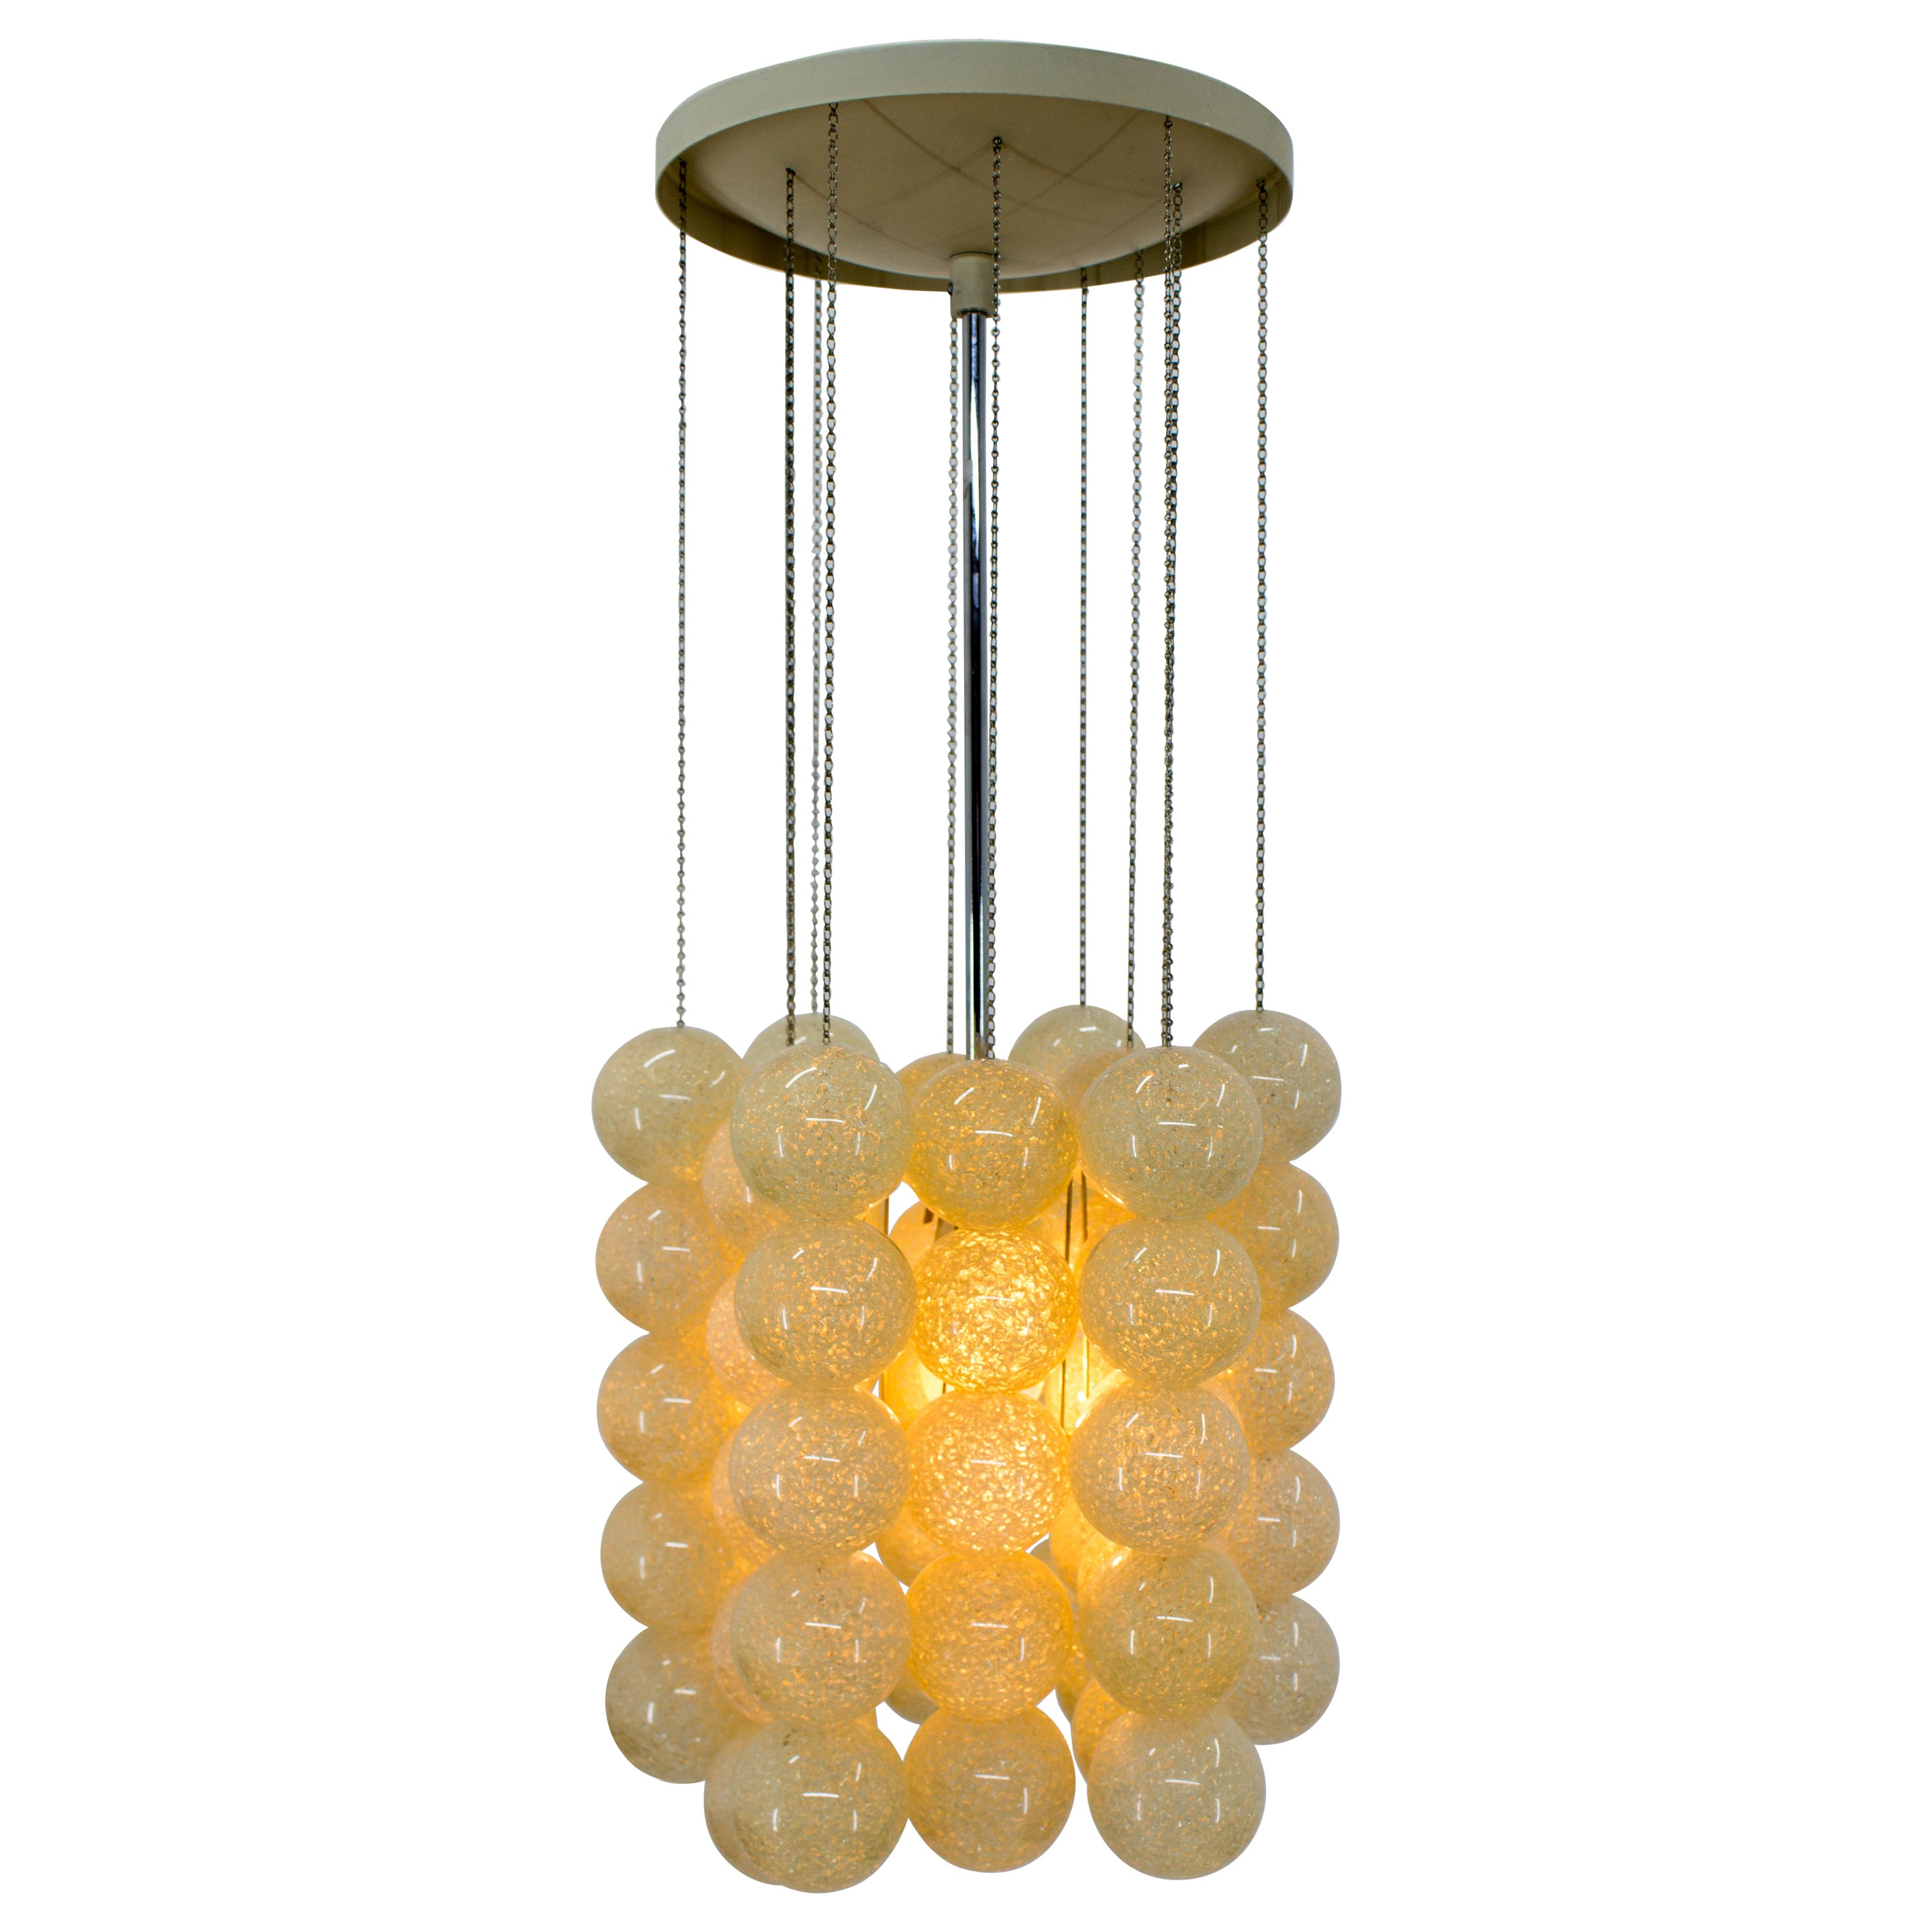 Chandelier by Napako, 1970s